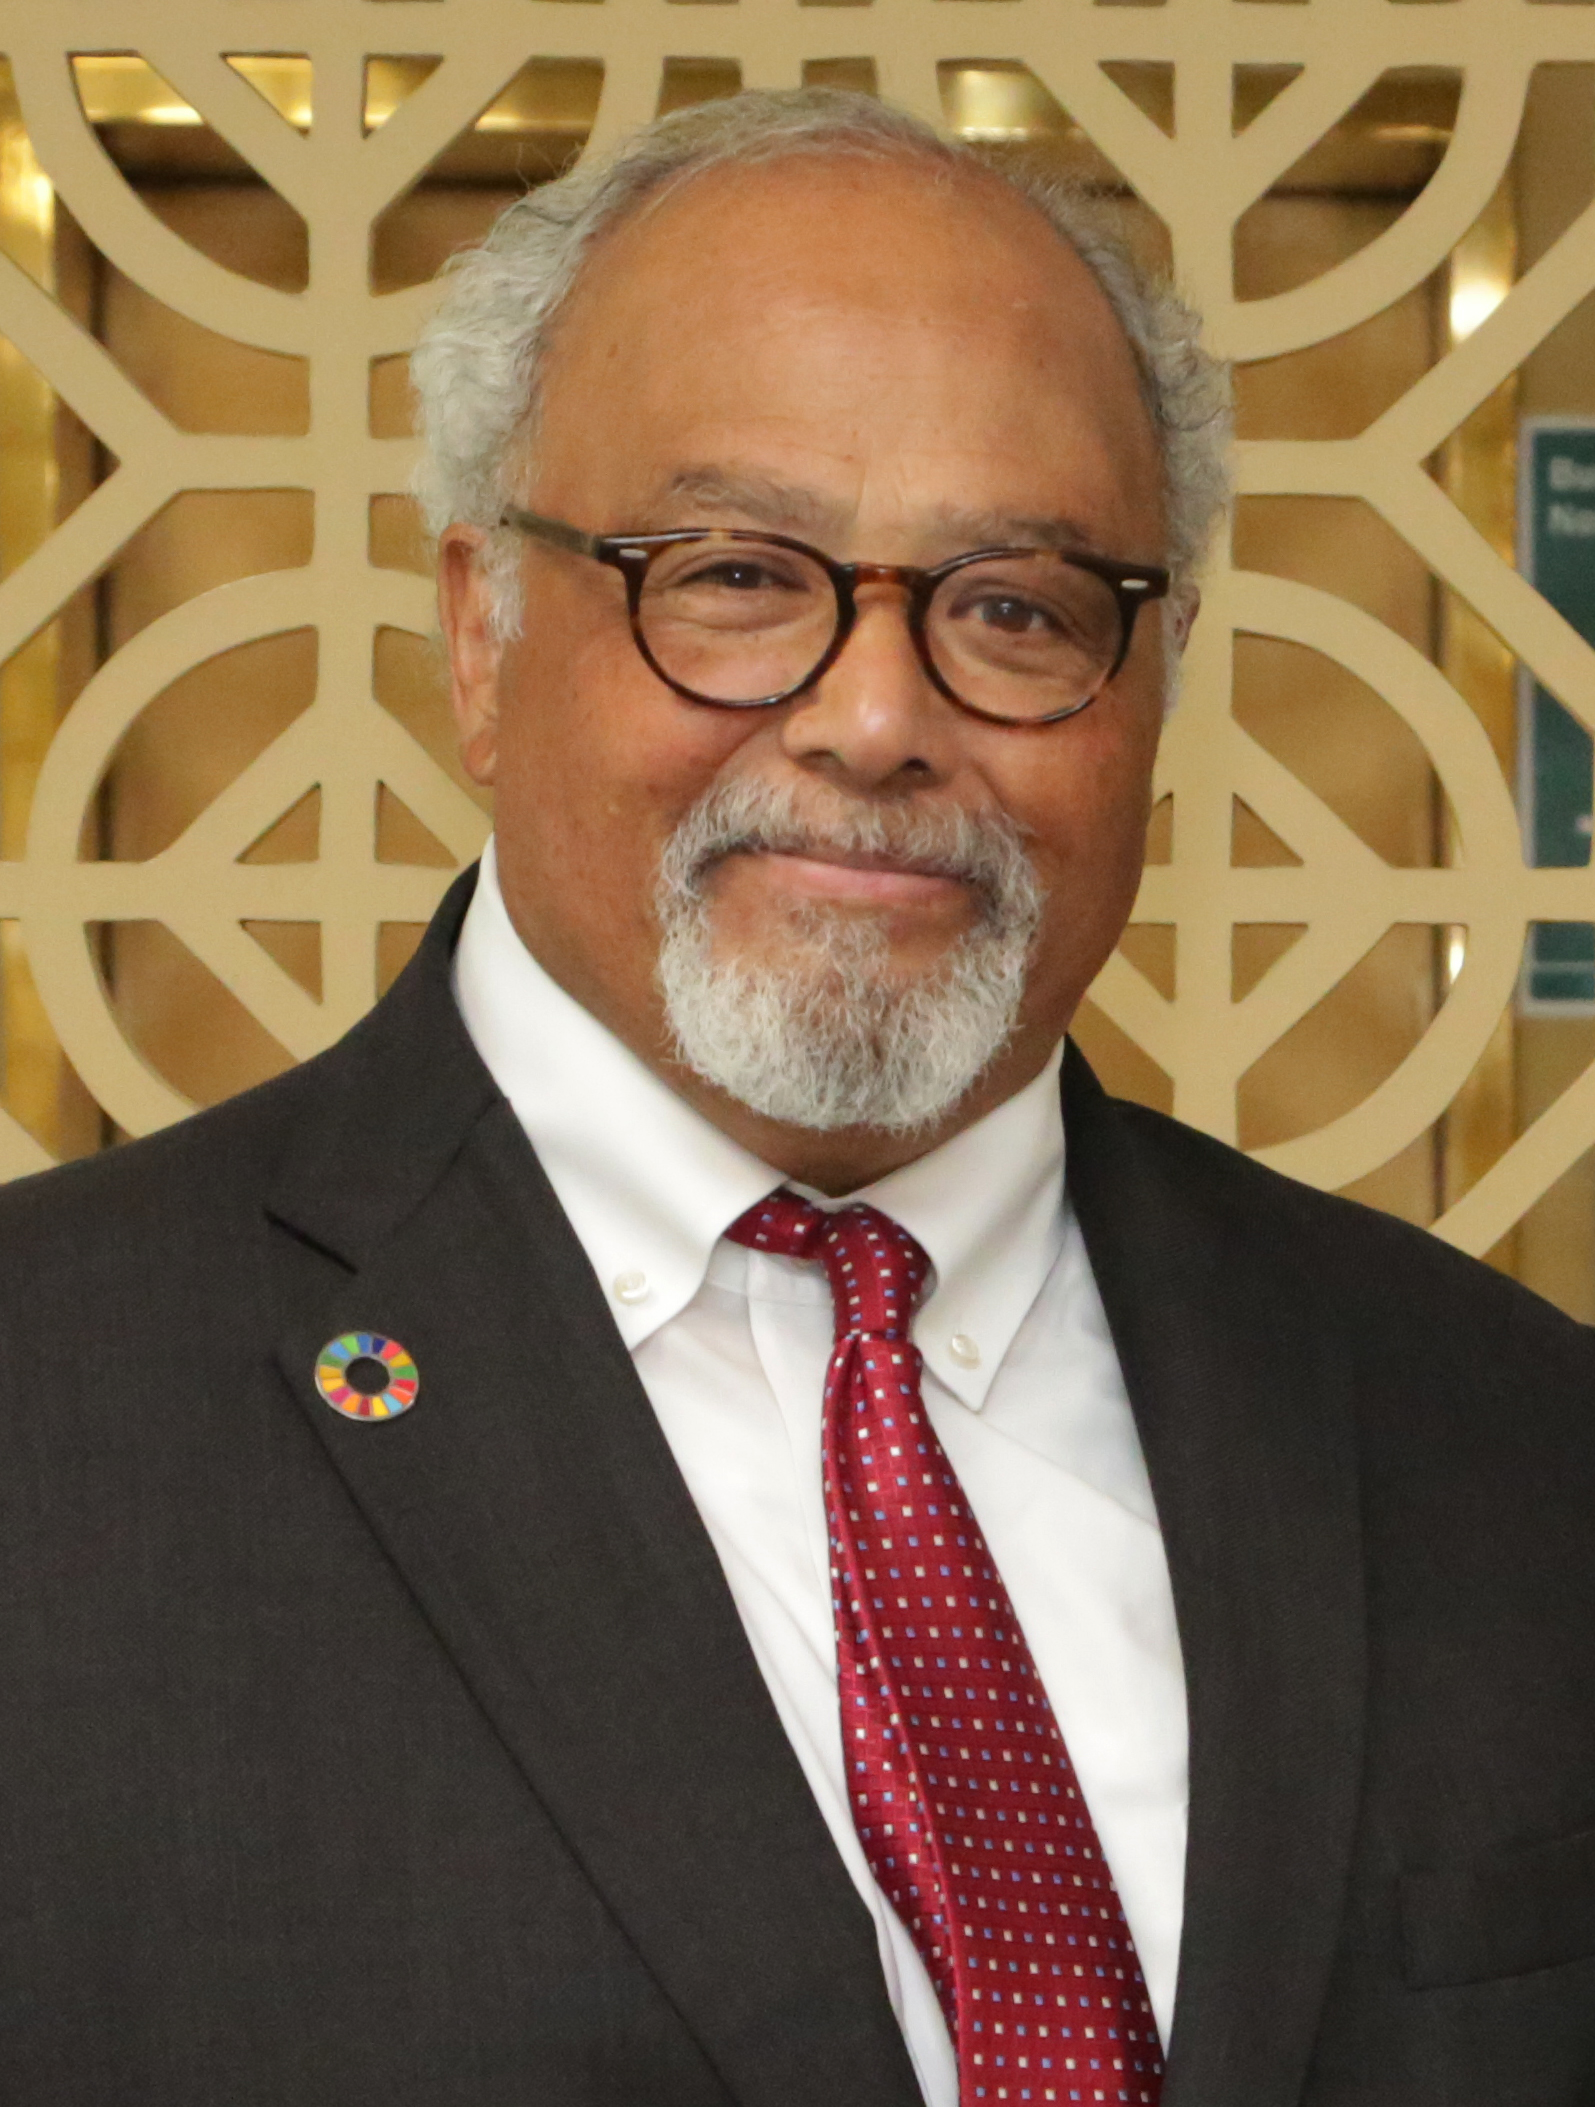 Goosby in 2017